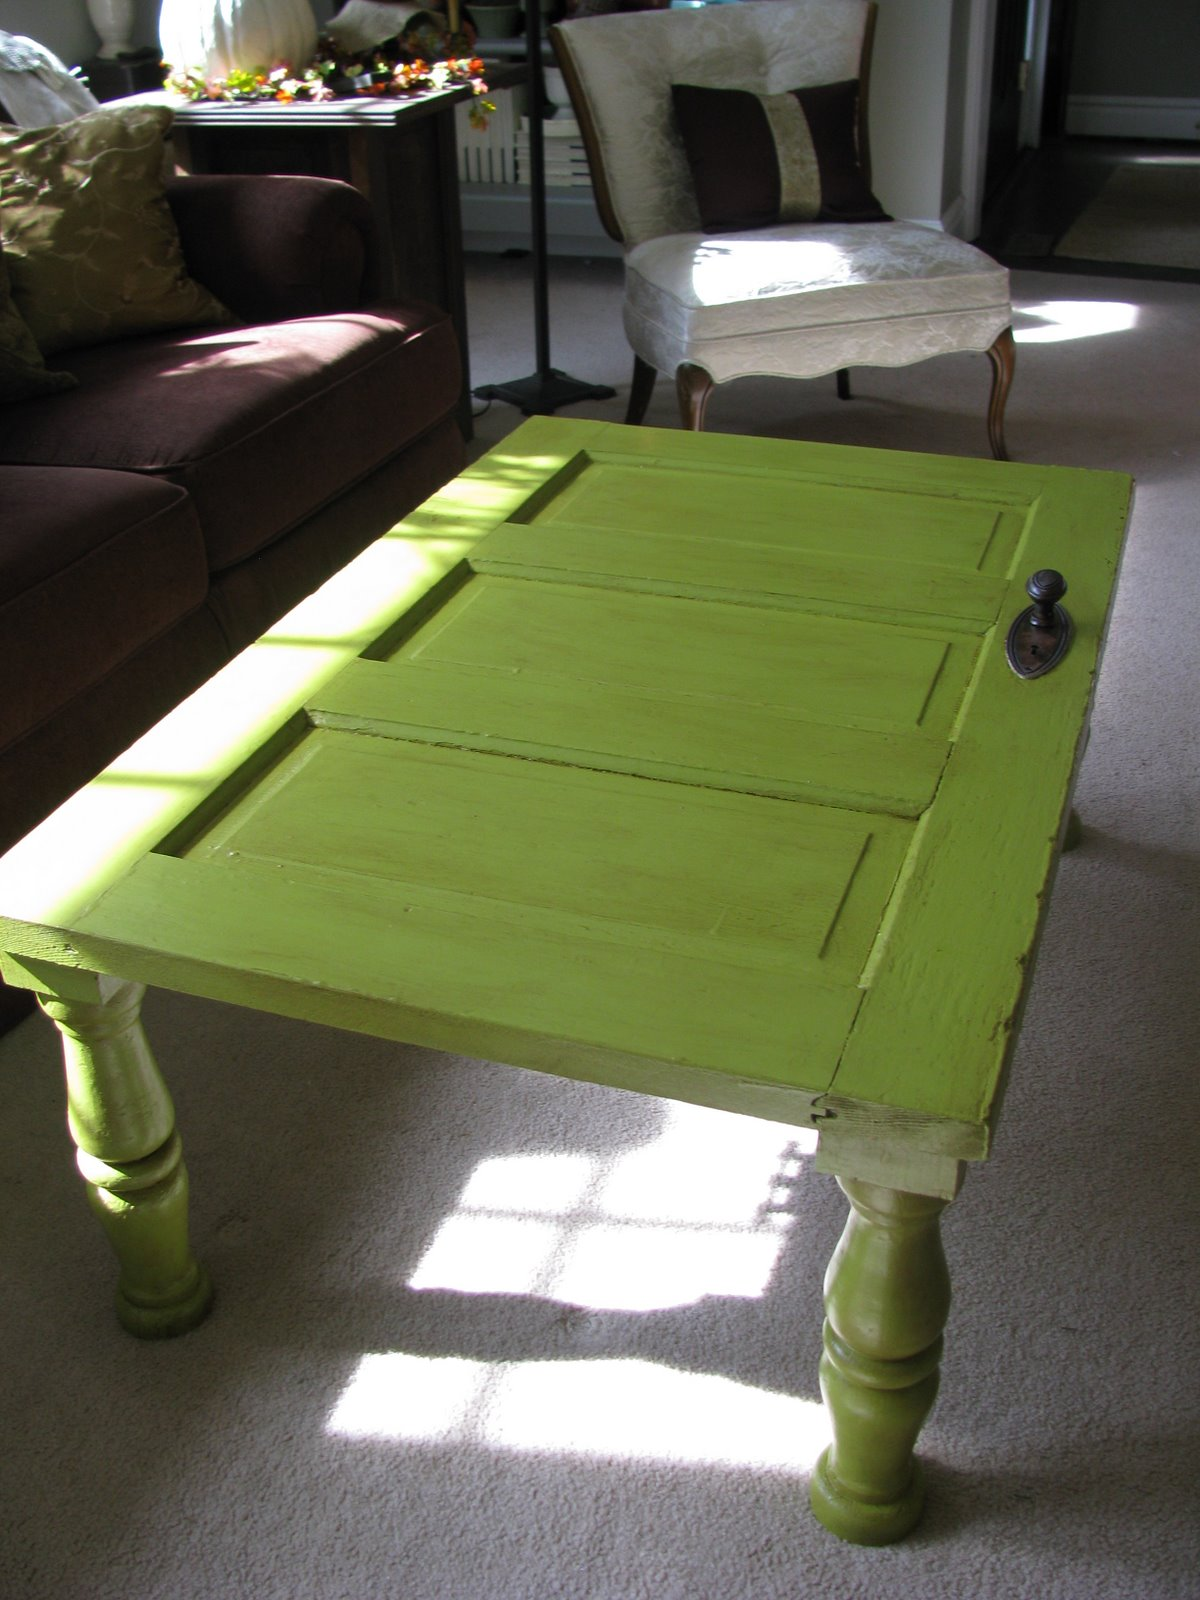 - Www.remodelaholic.com Wp-content Uploads 2015 04 Coffee-table-joys